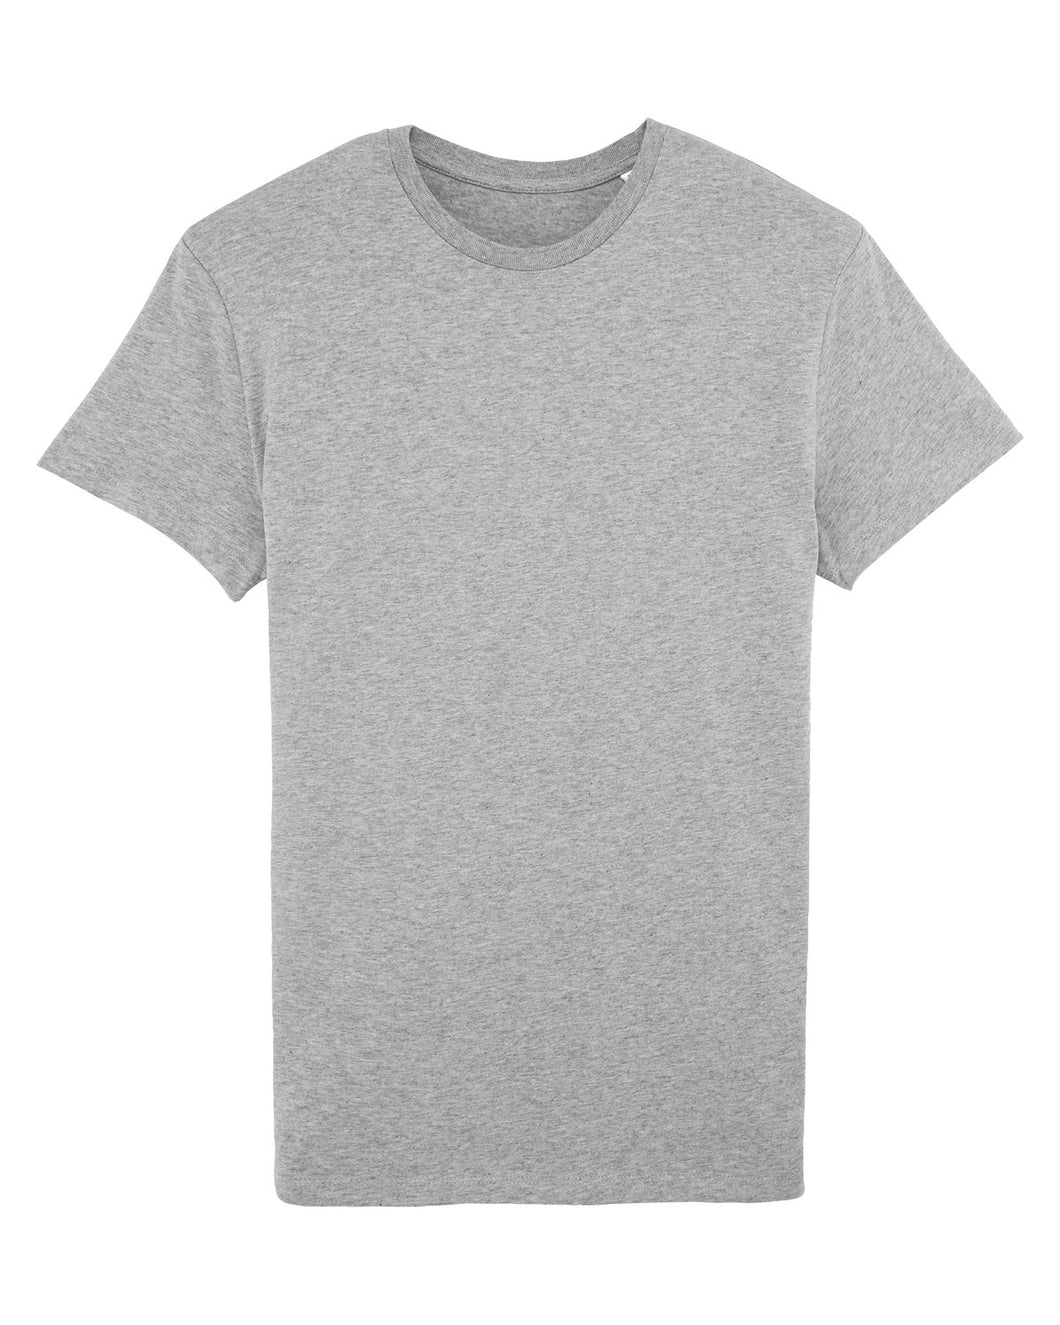 MECILLA [**36501] THE ORGANIC COTTON MEN'S FITTED T-SHIRT